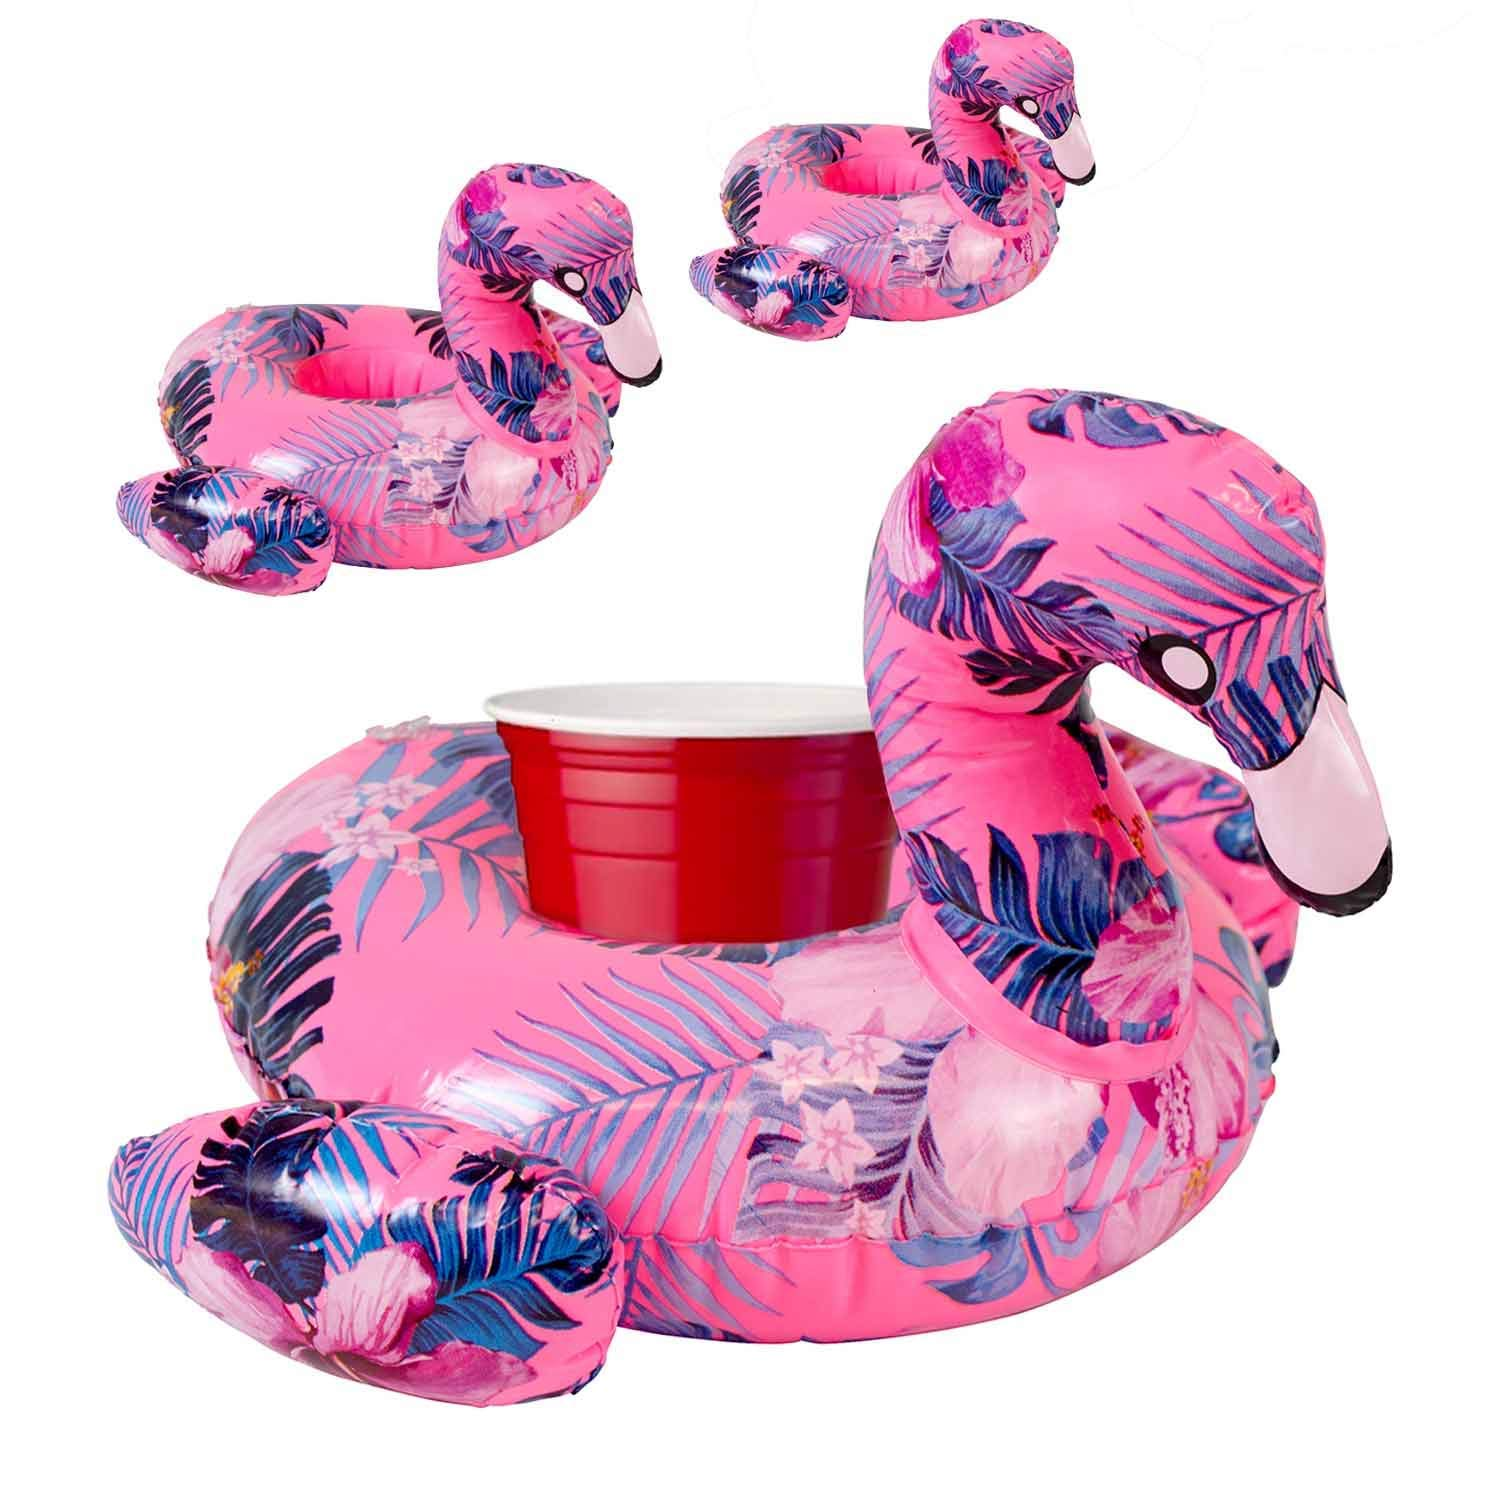 61718185c82b Get Quotations · Premium Inflatable Drink Holder (Flamingo) - 3 Pack of Pool  Drink Holder Floats